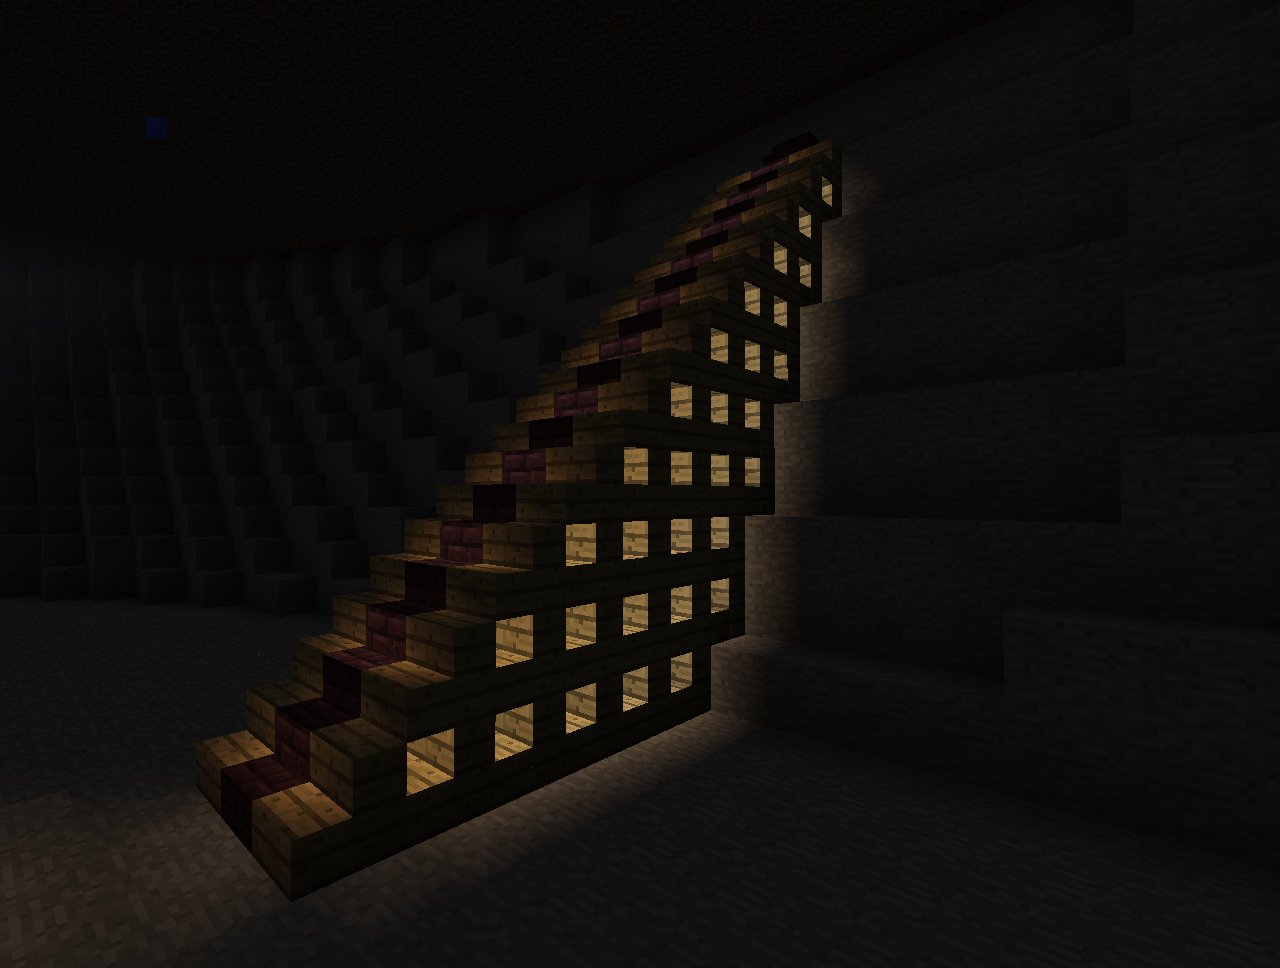 minecraft-stairsoverview-for-qzjavs-yt9tuw7o.png 1,280×968 pixels